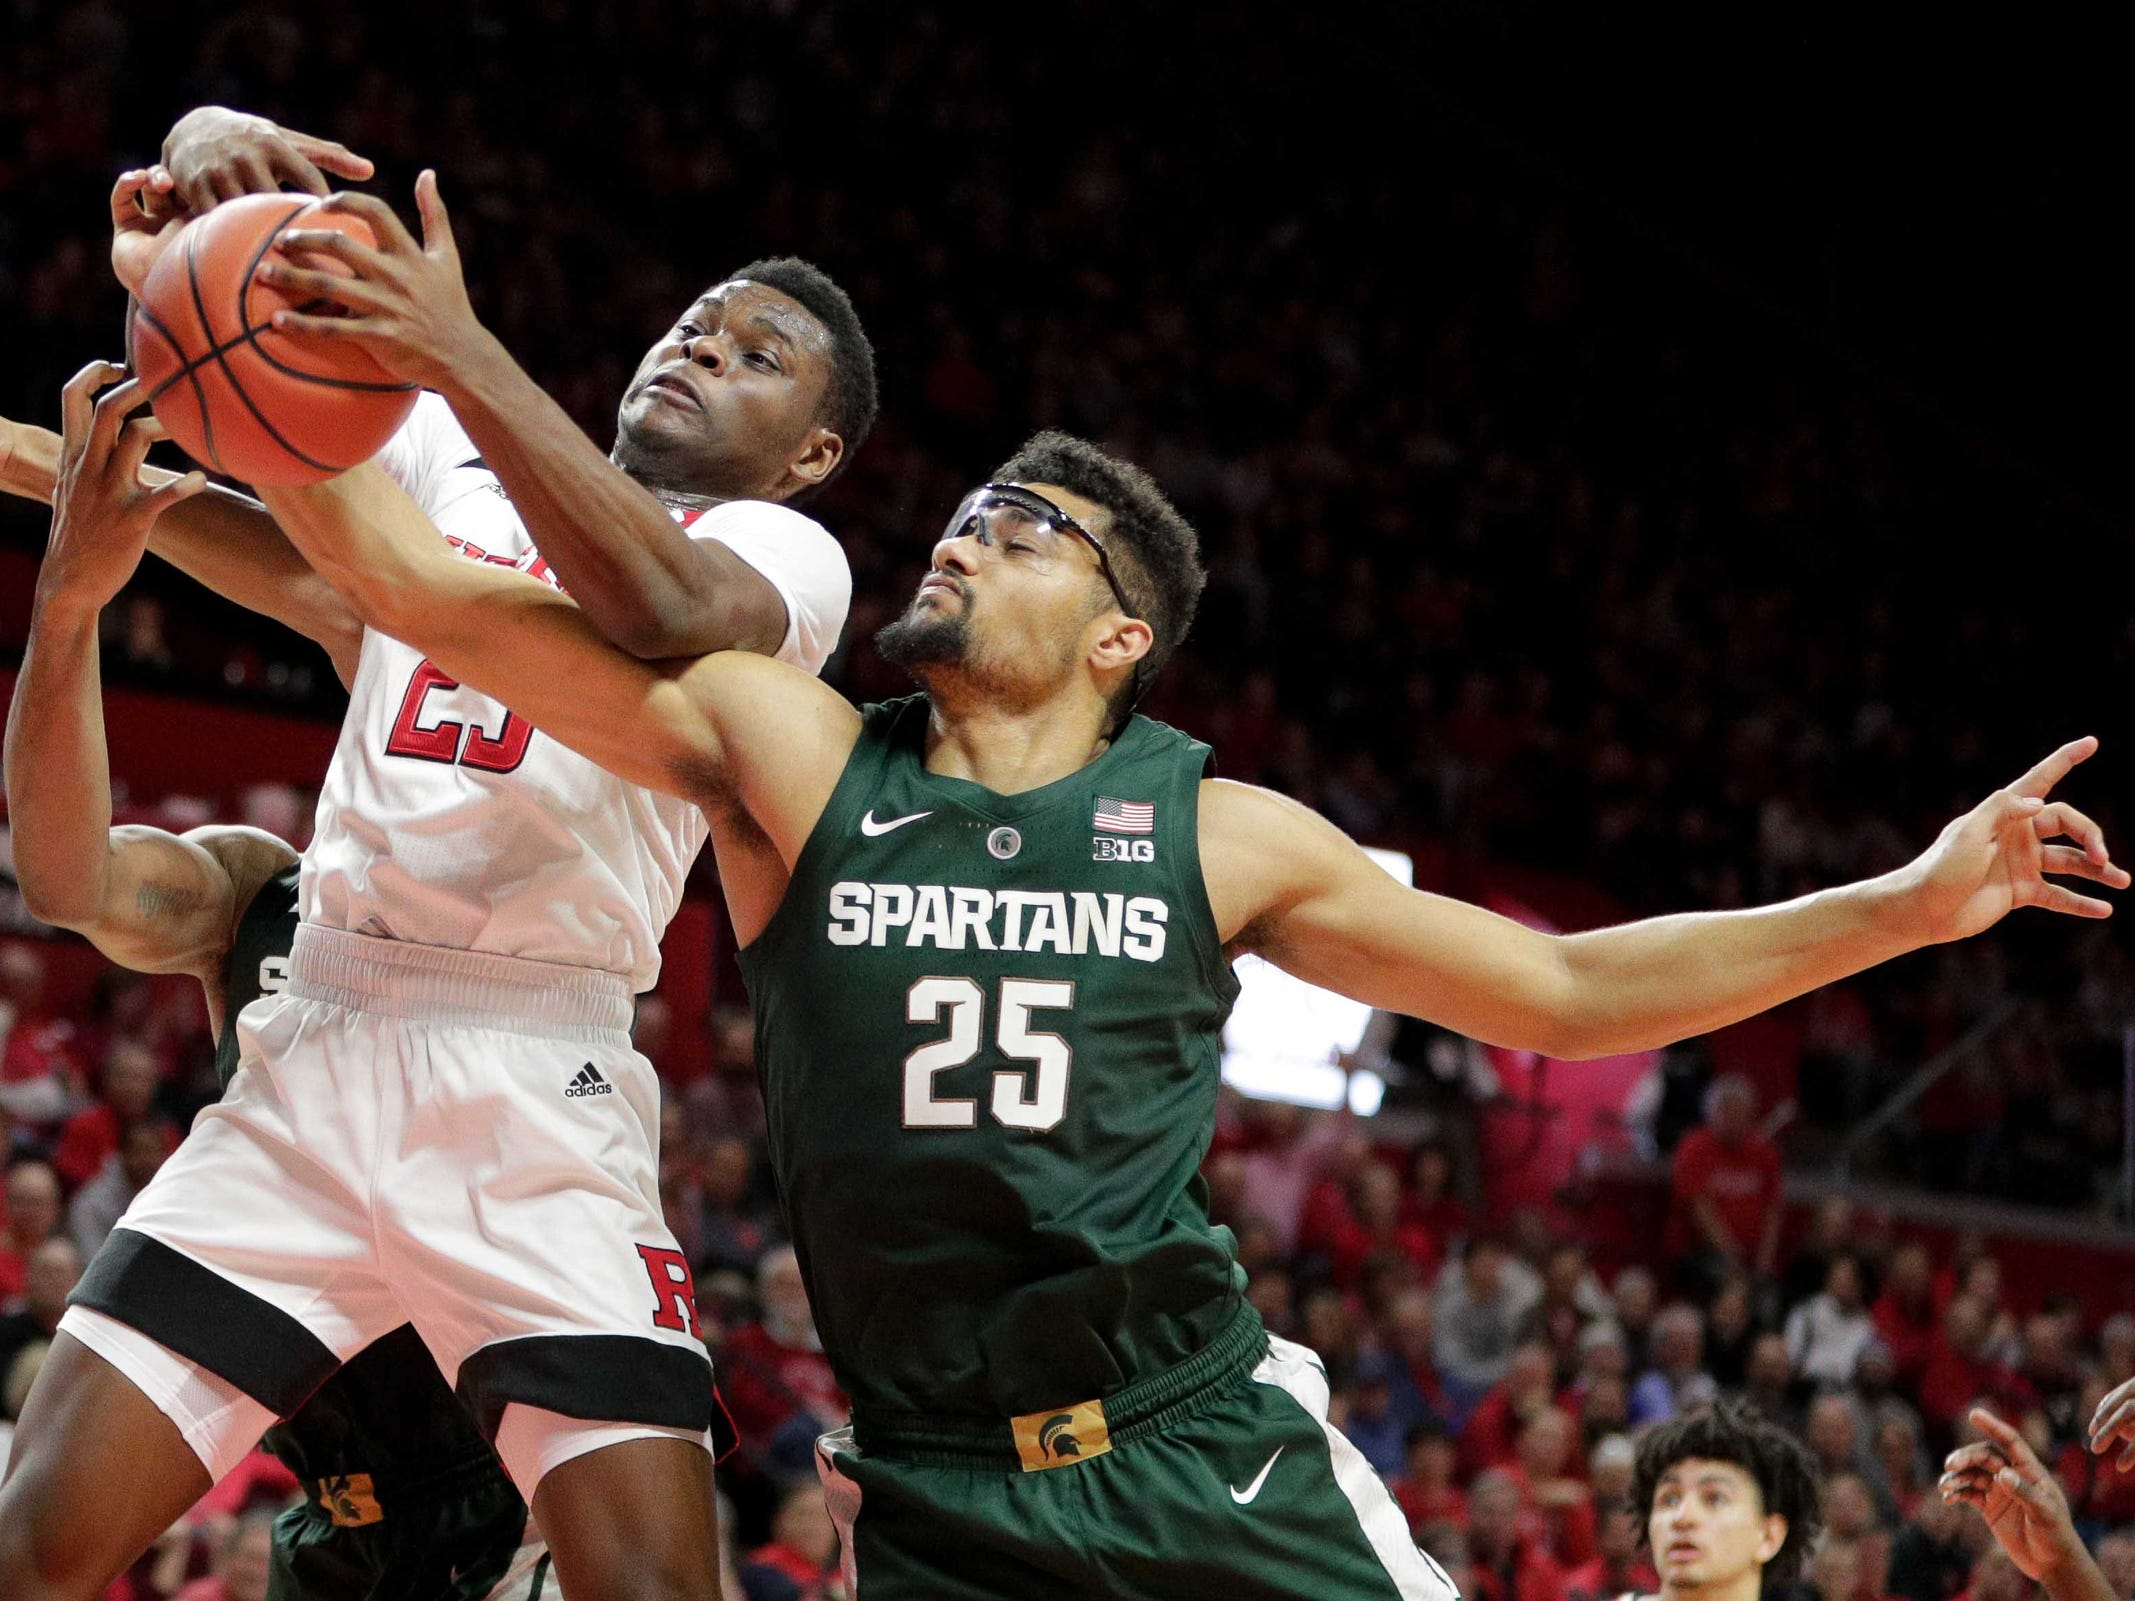 Rutgers guard Montez Mathis rebounds against Michigan State forward Kenny Goins during the second half at Rutgers Athletic Center on Nov. 30, 2018 in Piscataway, N.J.